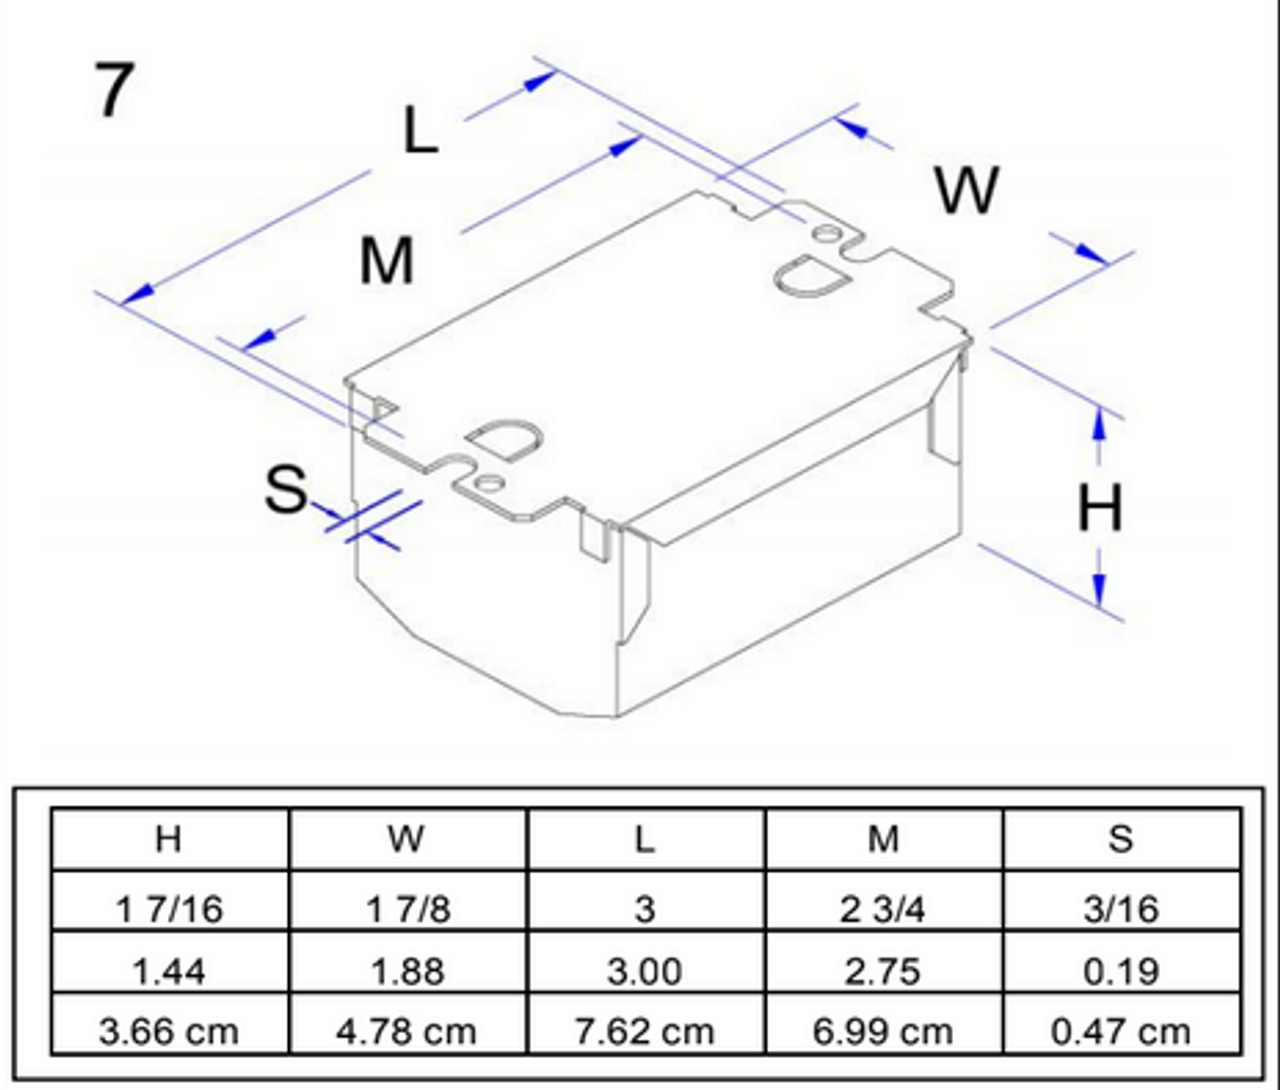 Magnetic Ballast Wiring Schematic on magnetic switch wiring, magnetic ballast operation, choke wiring, magnetic ballast parts,